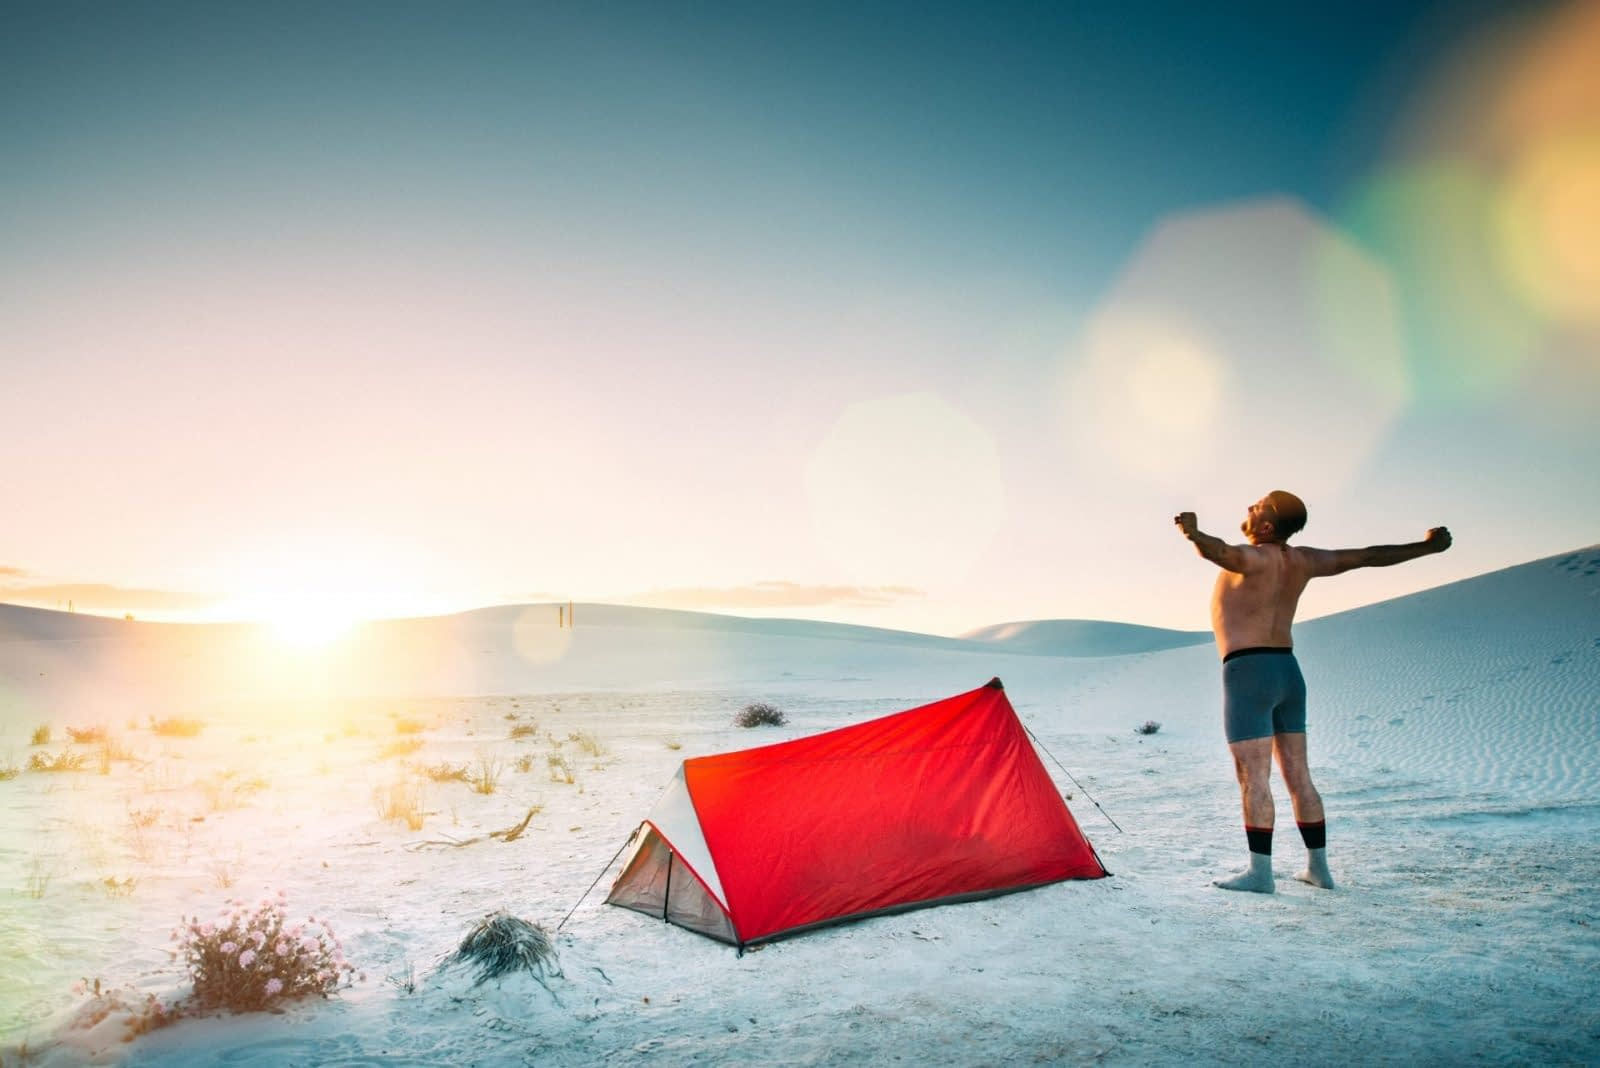 Backcountry Camping in The Desert